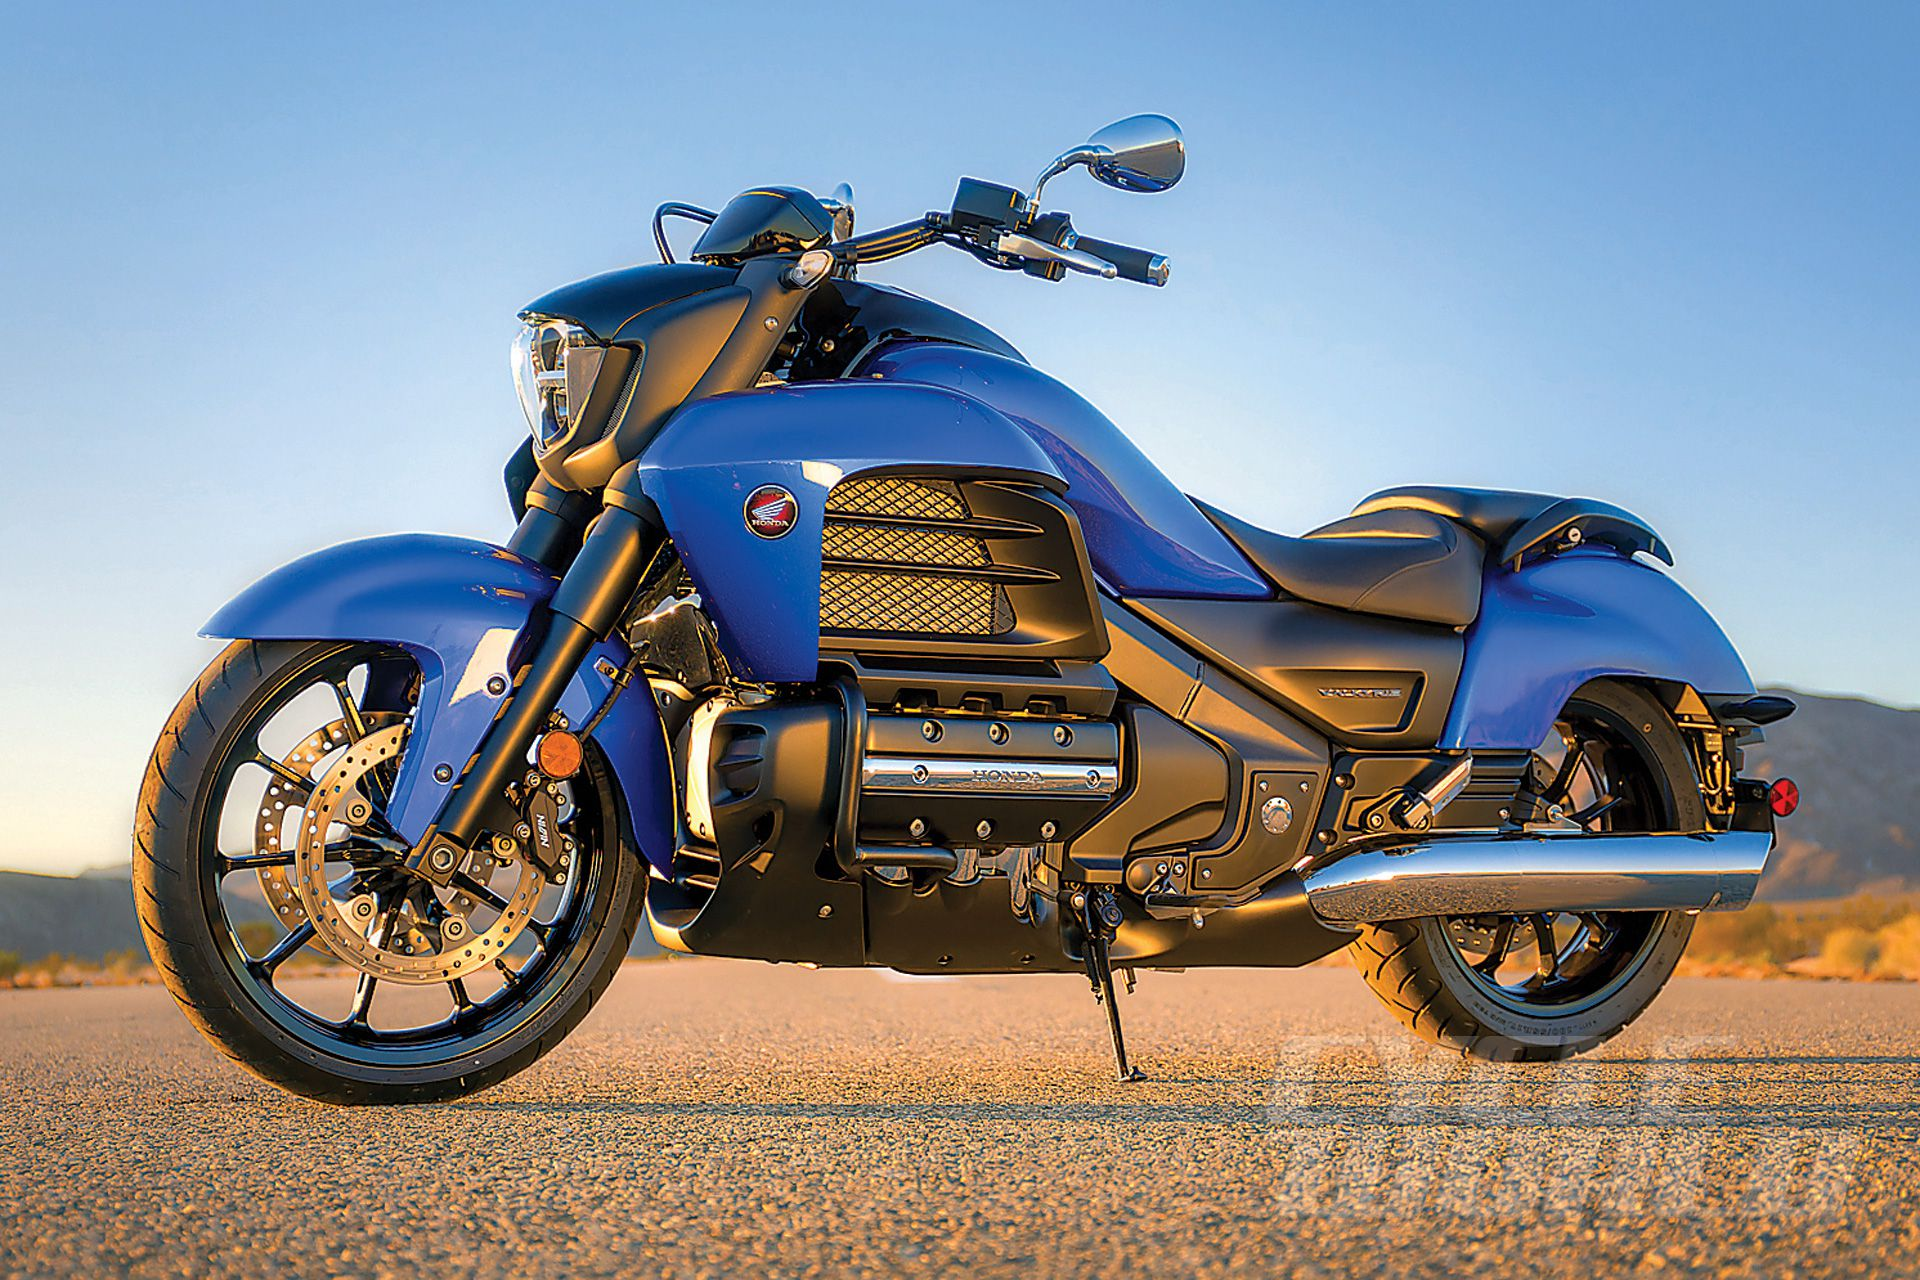 2014 Honda Valkyrie First Look Review Specs Photos Cycle World